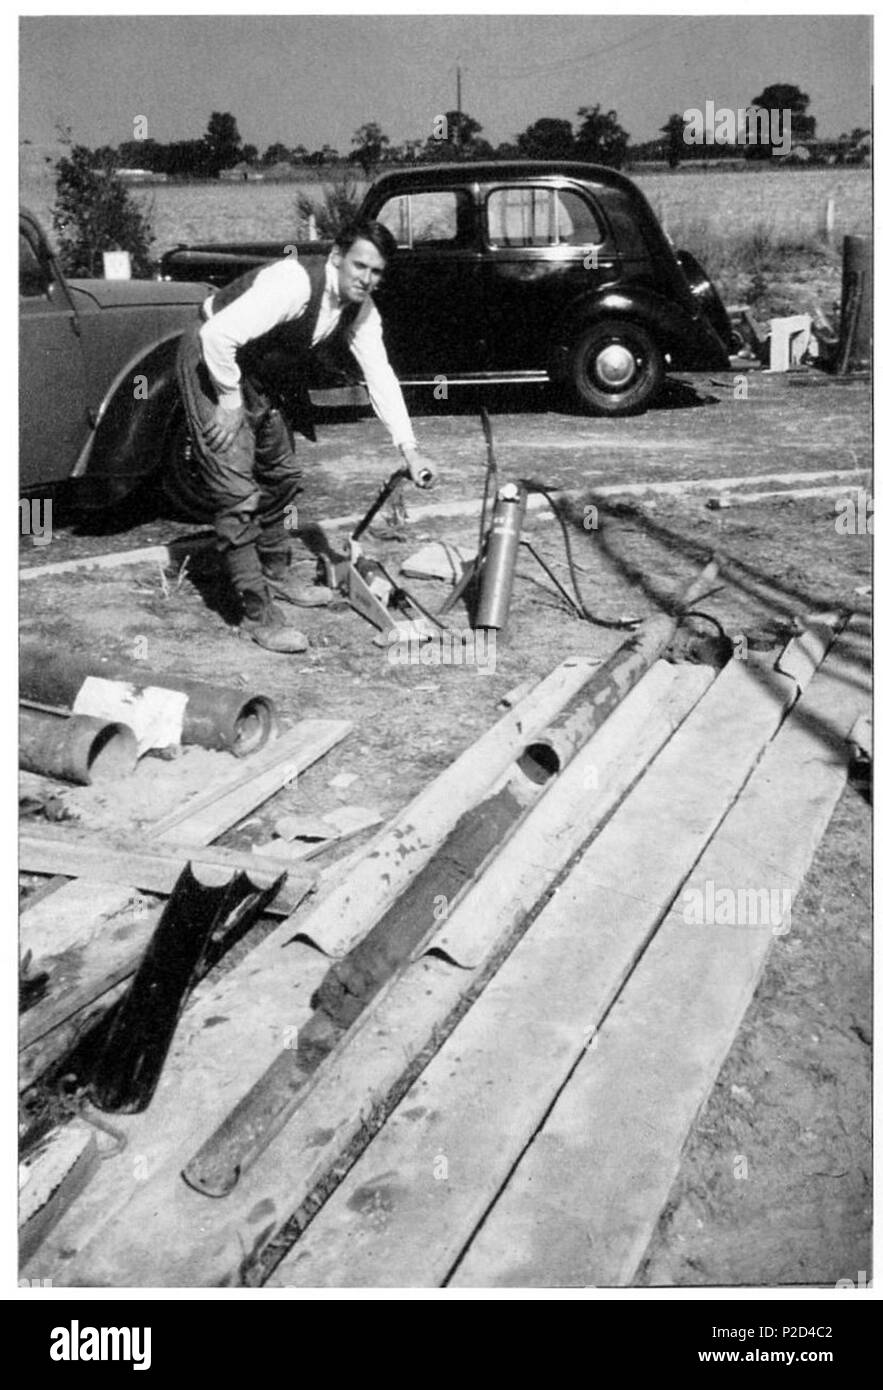 . English: Brian Funnell recovering core samples at the site of the Ludham Borehole, funded by the Royal Society of London, 1959. Image with kind permission Prof R.G. West. The Ludham Borehole was a geological research borehole drilled in 1959 near Ludham, Norfolk, UK. A continuous core sample of late Pliocene and early Pleistocene sediments of the Crag Group was recovered. Analysis allowed biostratigraphic zonal schemes for fossil pollen,foraminifera, mollusca and dinoflagellates to be constructed for horizons of the Red Crag Formation and Norwich Crag Formations, and for these formations to  - Stock Image